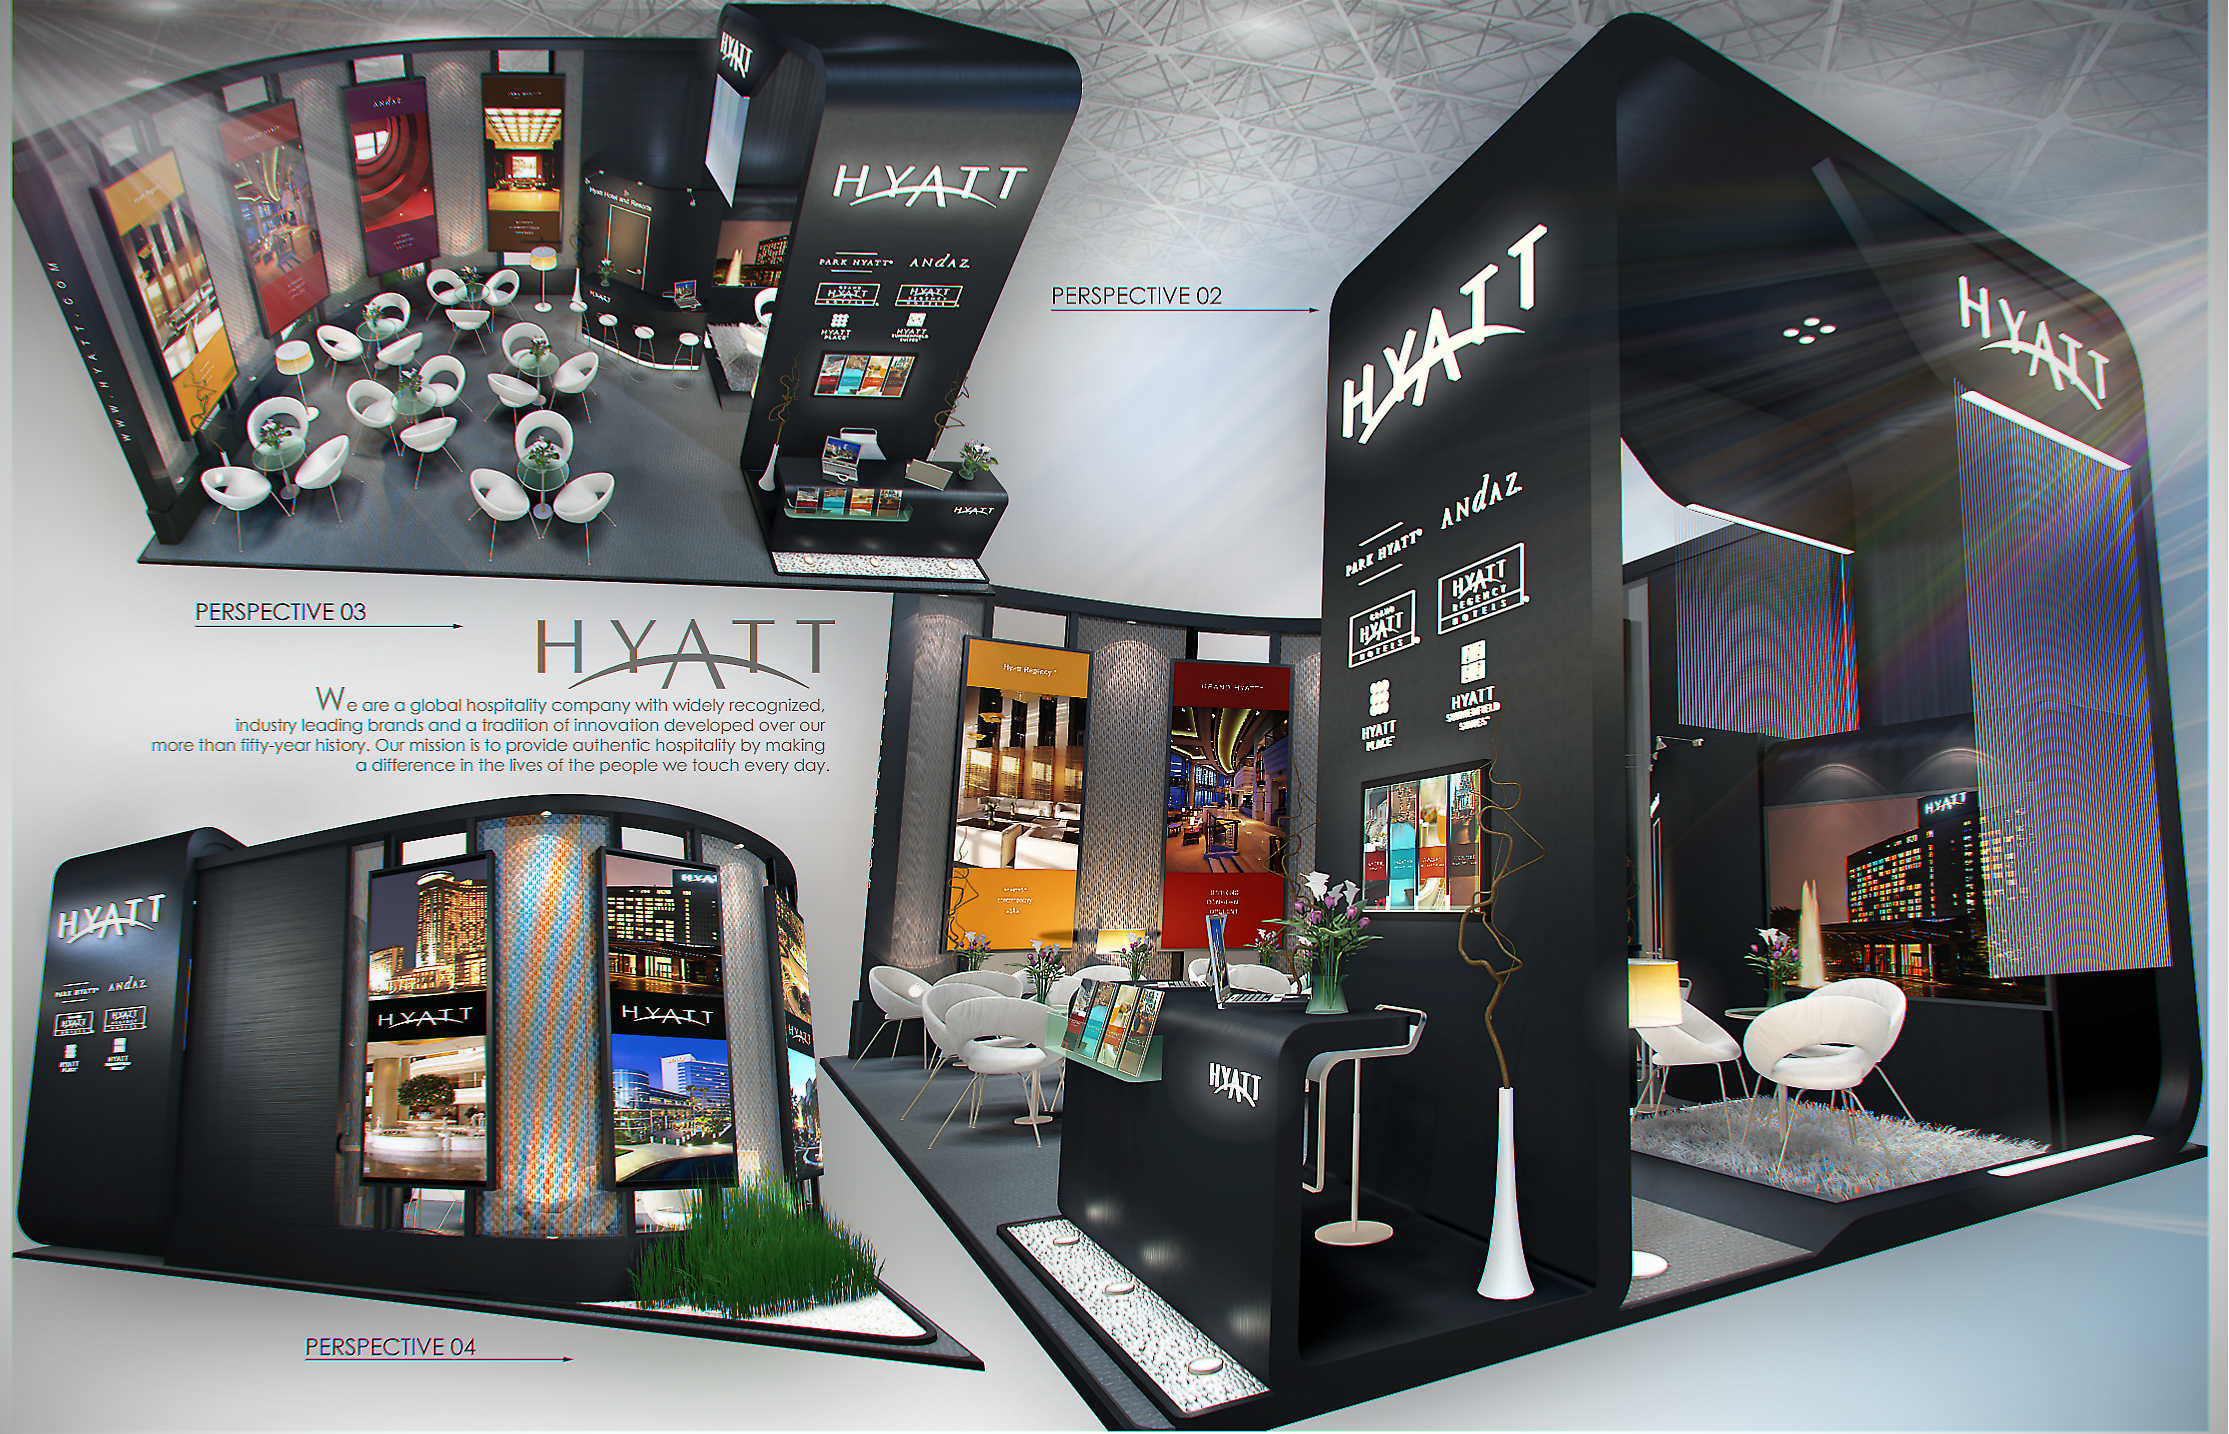 Exhibition Stand Photos : Exhibition design ideas on pinterest stands